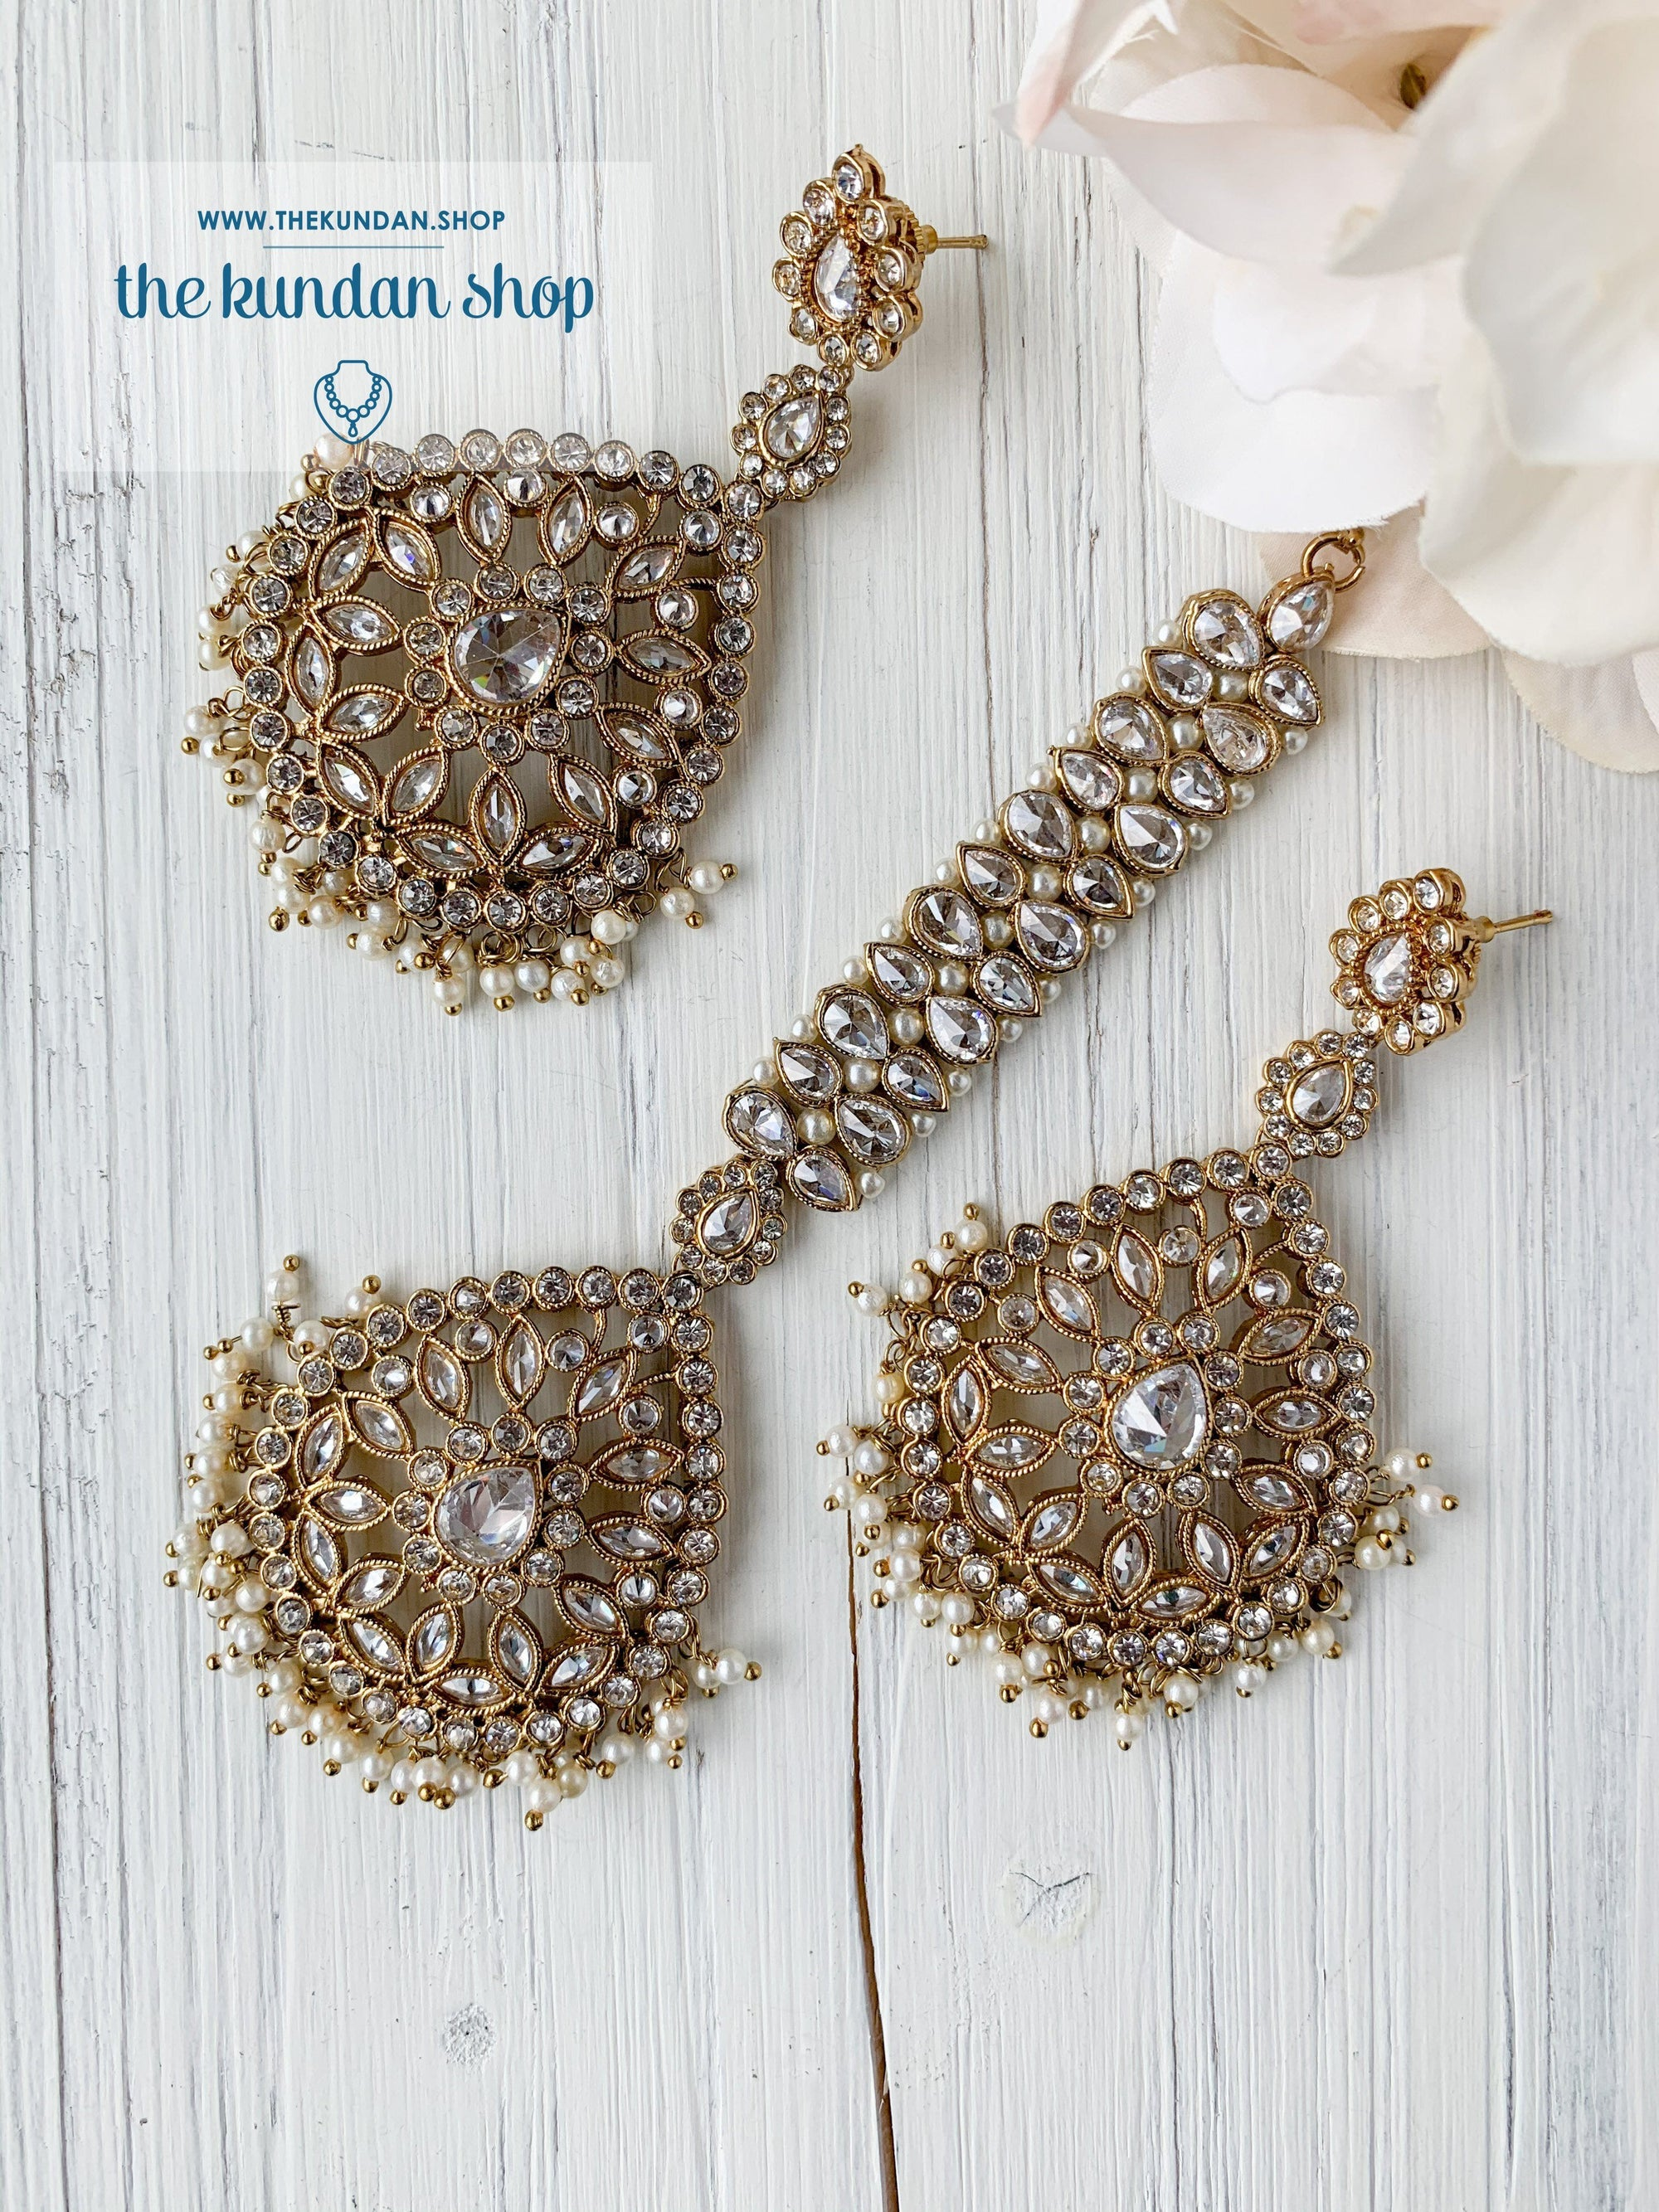 Infinite Love in Clear Earrings + Tikka THE KUNDAN SHOP